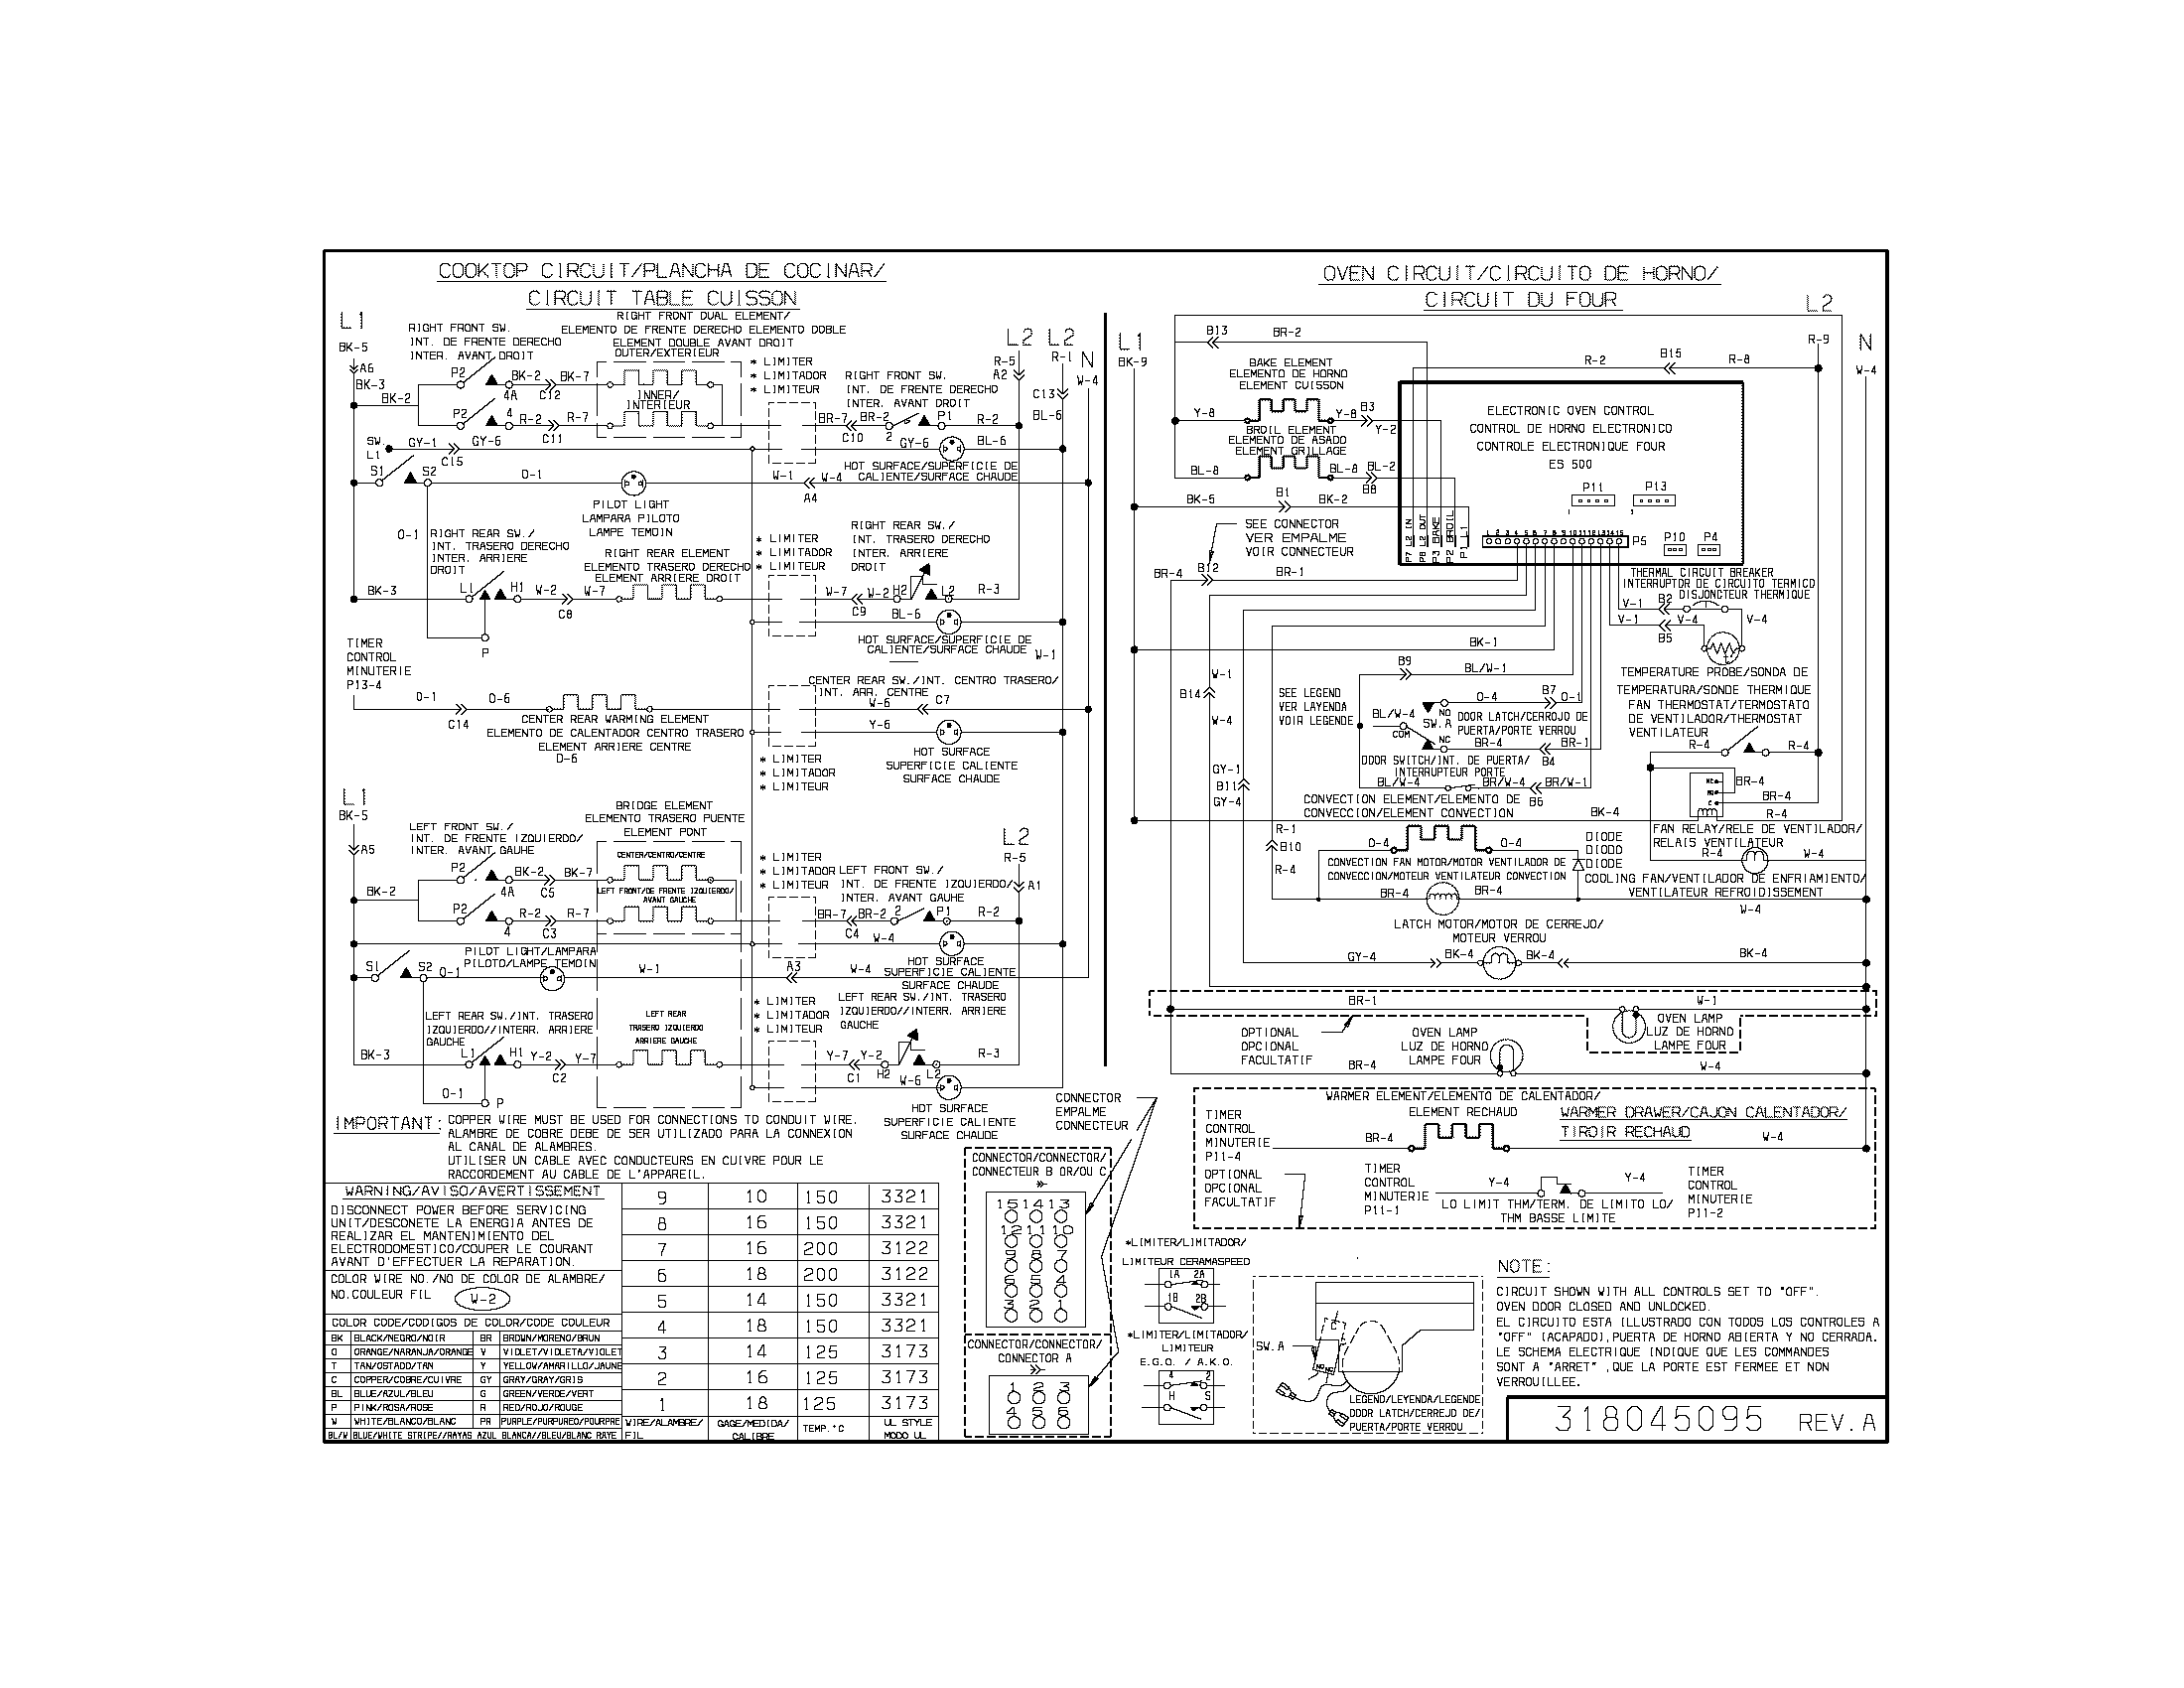 Induction Cooktop Wiring Diagram 32 Images Furnace On Stove Electric Motor Parts Frigidaire Cpes389cc2 Range Timer Clocks And Appliance Timers